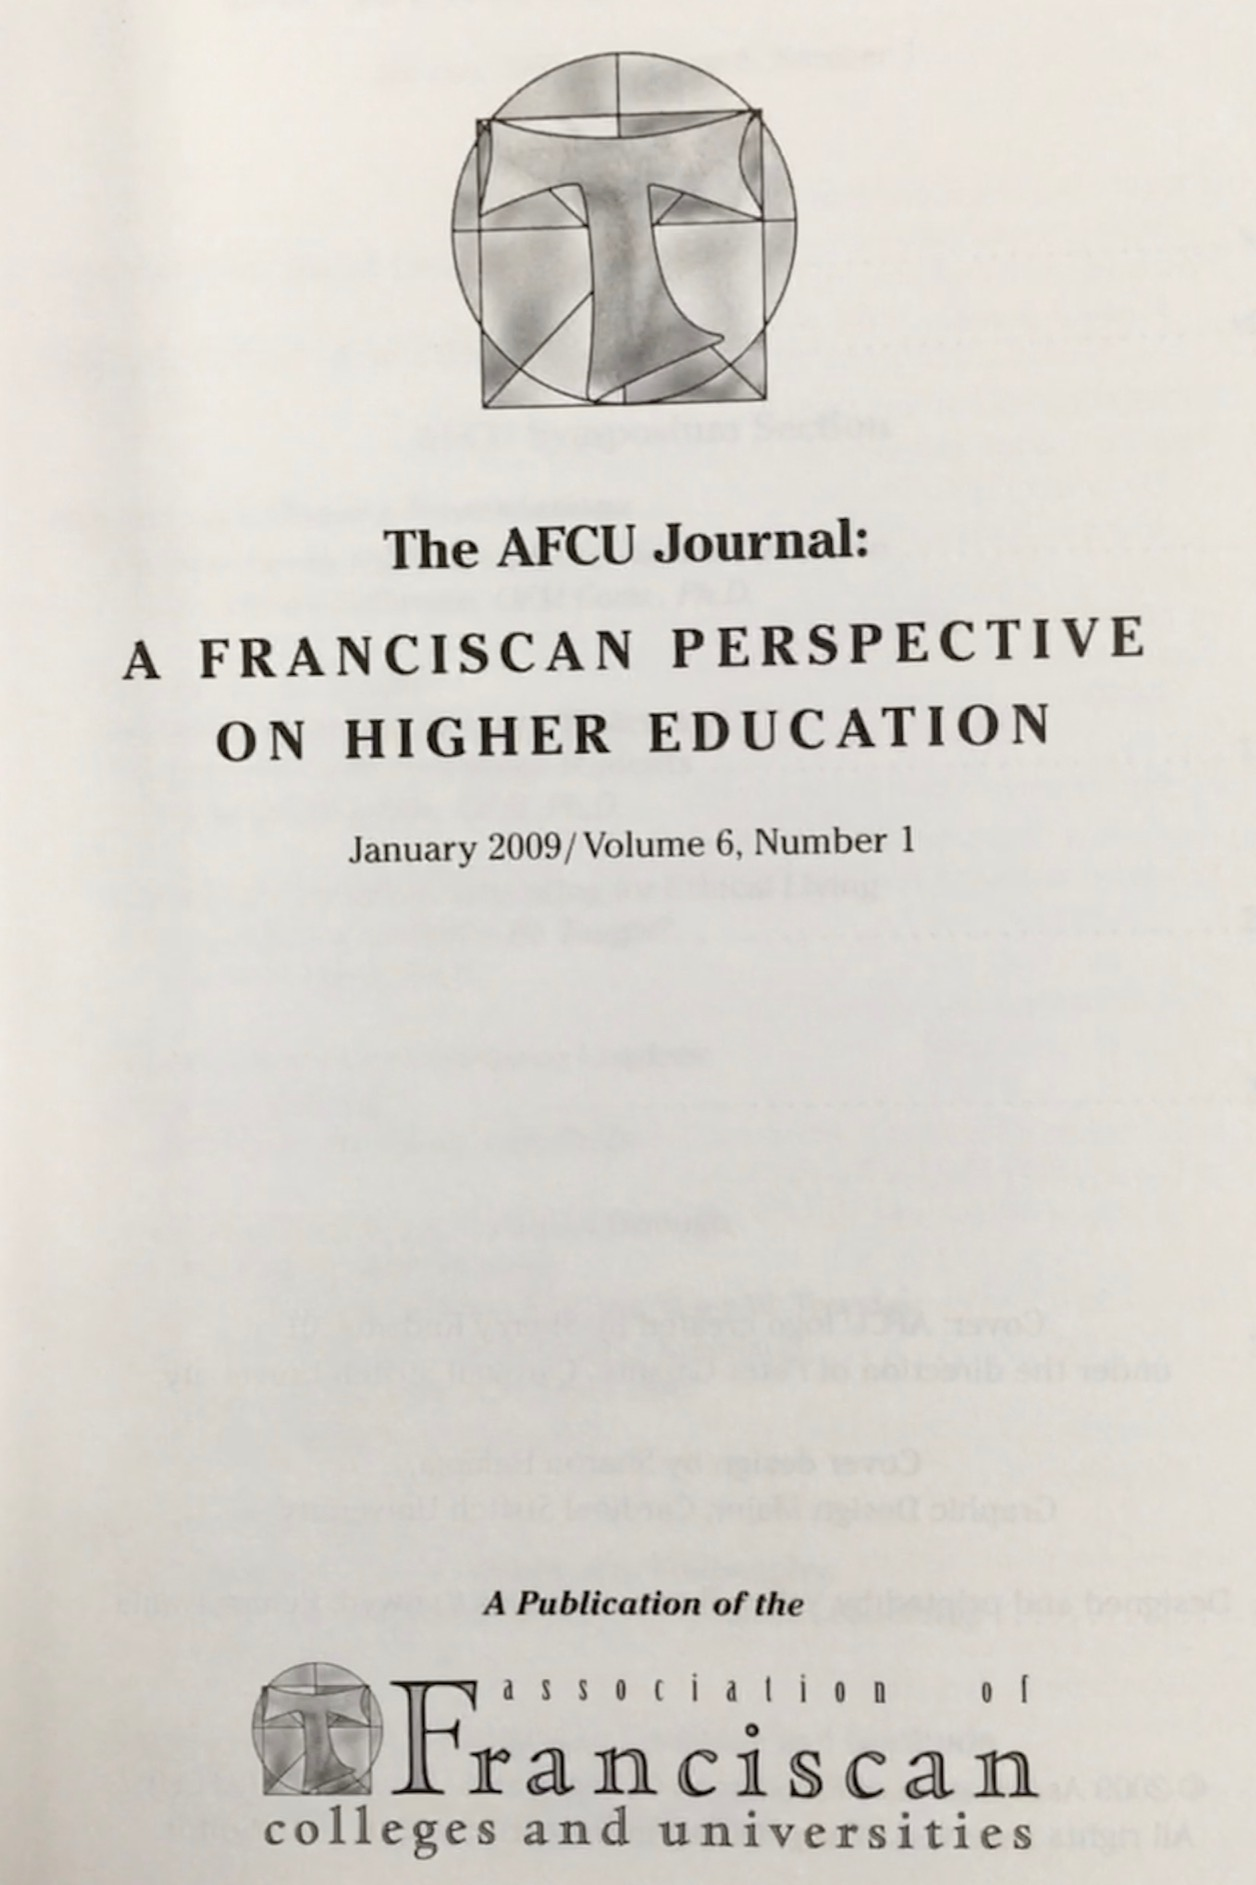 Image for The AFCU Journal: A Franciscan Perspective on Higher Education [January 2009; Volume 6, Number 1]